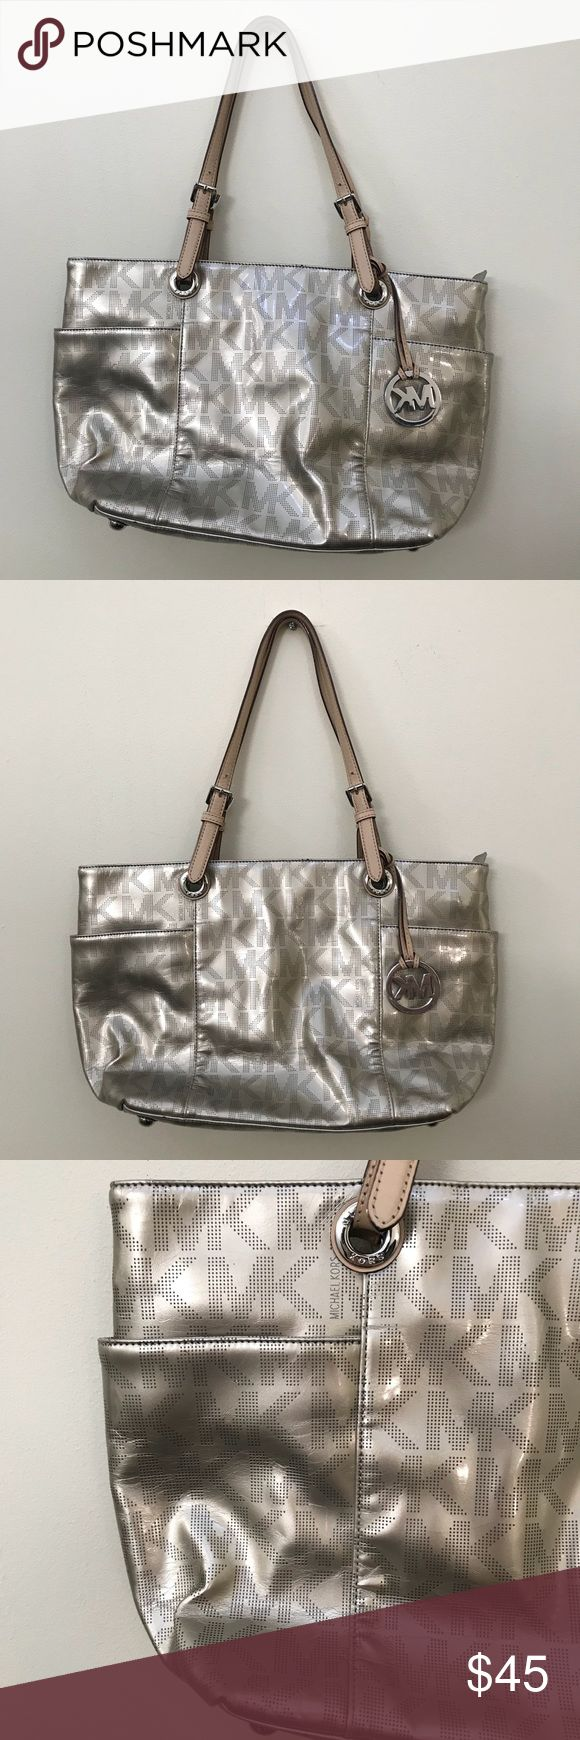 Michael Kors MK signature metallic silver tote bag Michael Kors MK signature metallic silver tote bag  Preowned condition with where to bottom, corners and strap. This was used for two seasons then stored in a tote, with minor wear from storage. Some markings on internal area inside. Perfect for school, career, work or weekend bag. Great size to bring on airplane for travel as personal item.   Bundle and save with other items in my closet,   I ship same or next day from Ohio! MICHAEL Michael…